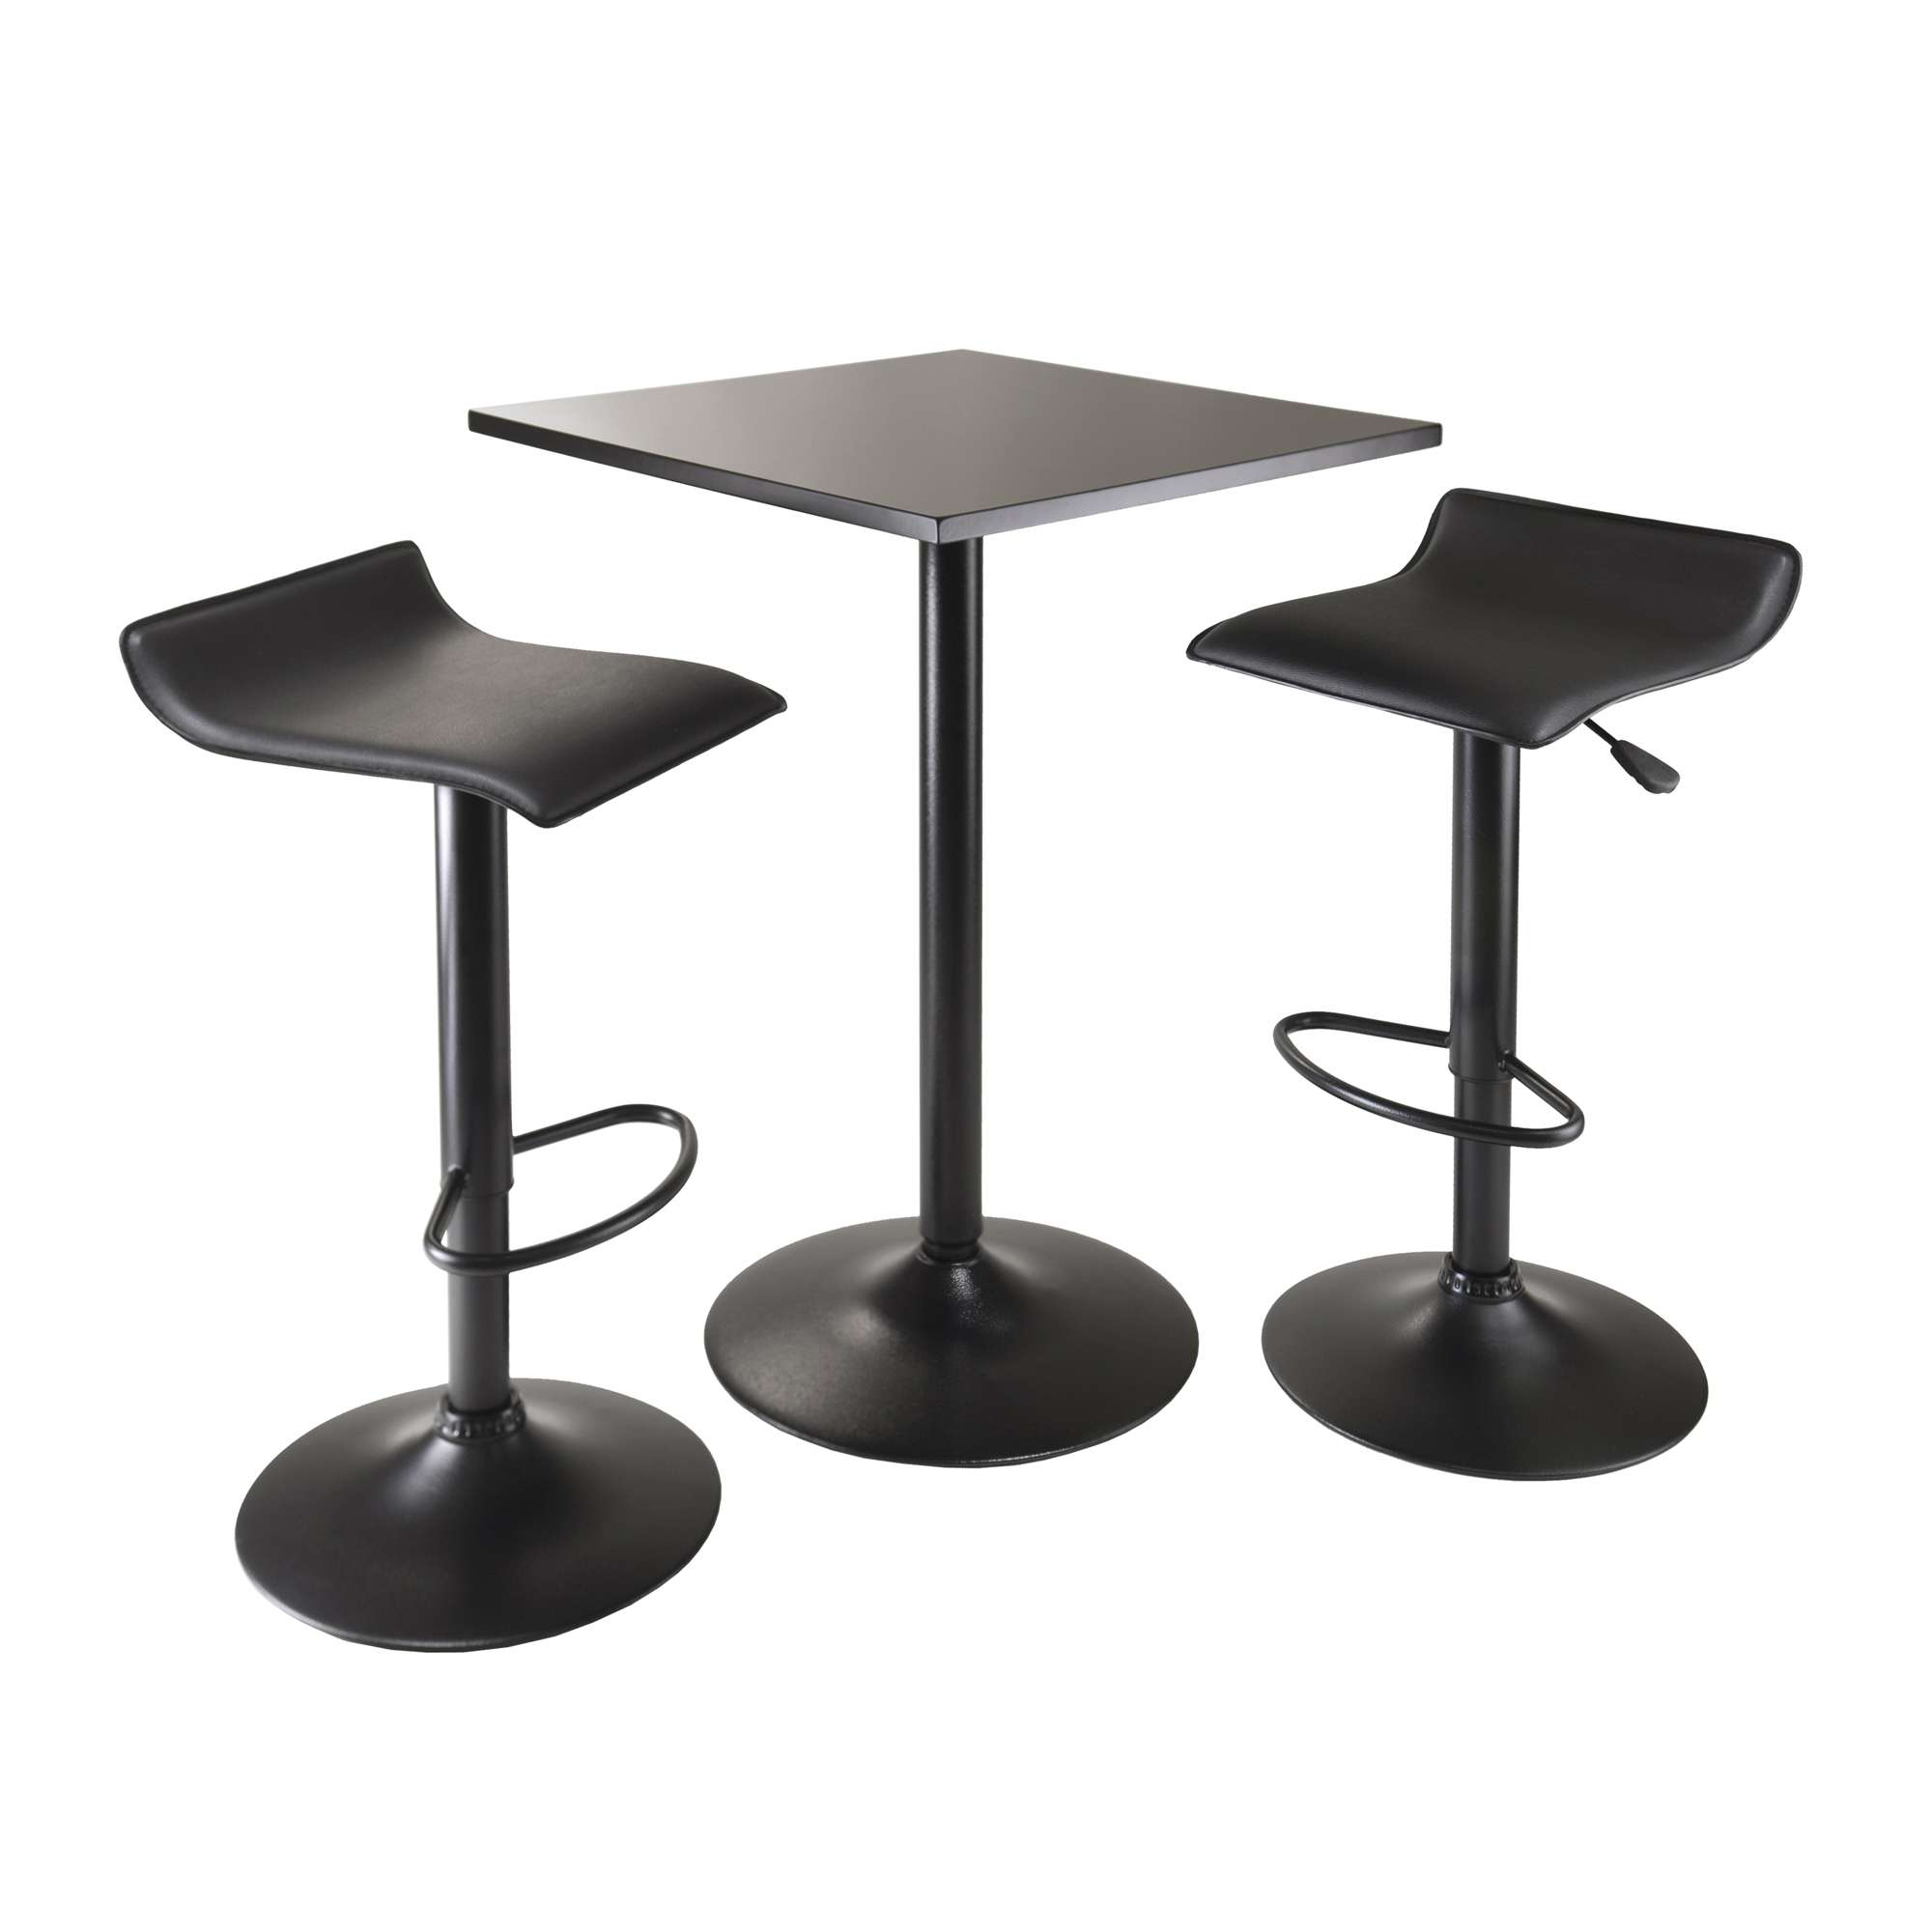 Winsome Wood Obsidian Black 3 Piece Square Table Counter Height Throughout Most Popular Winsome 3 Piece Counter Height Dining Sets (View 24 of 25)